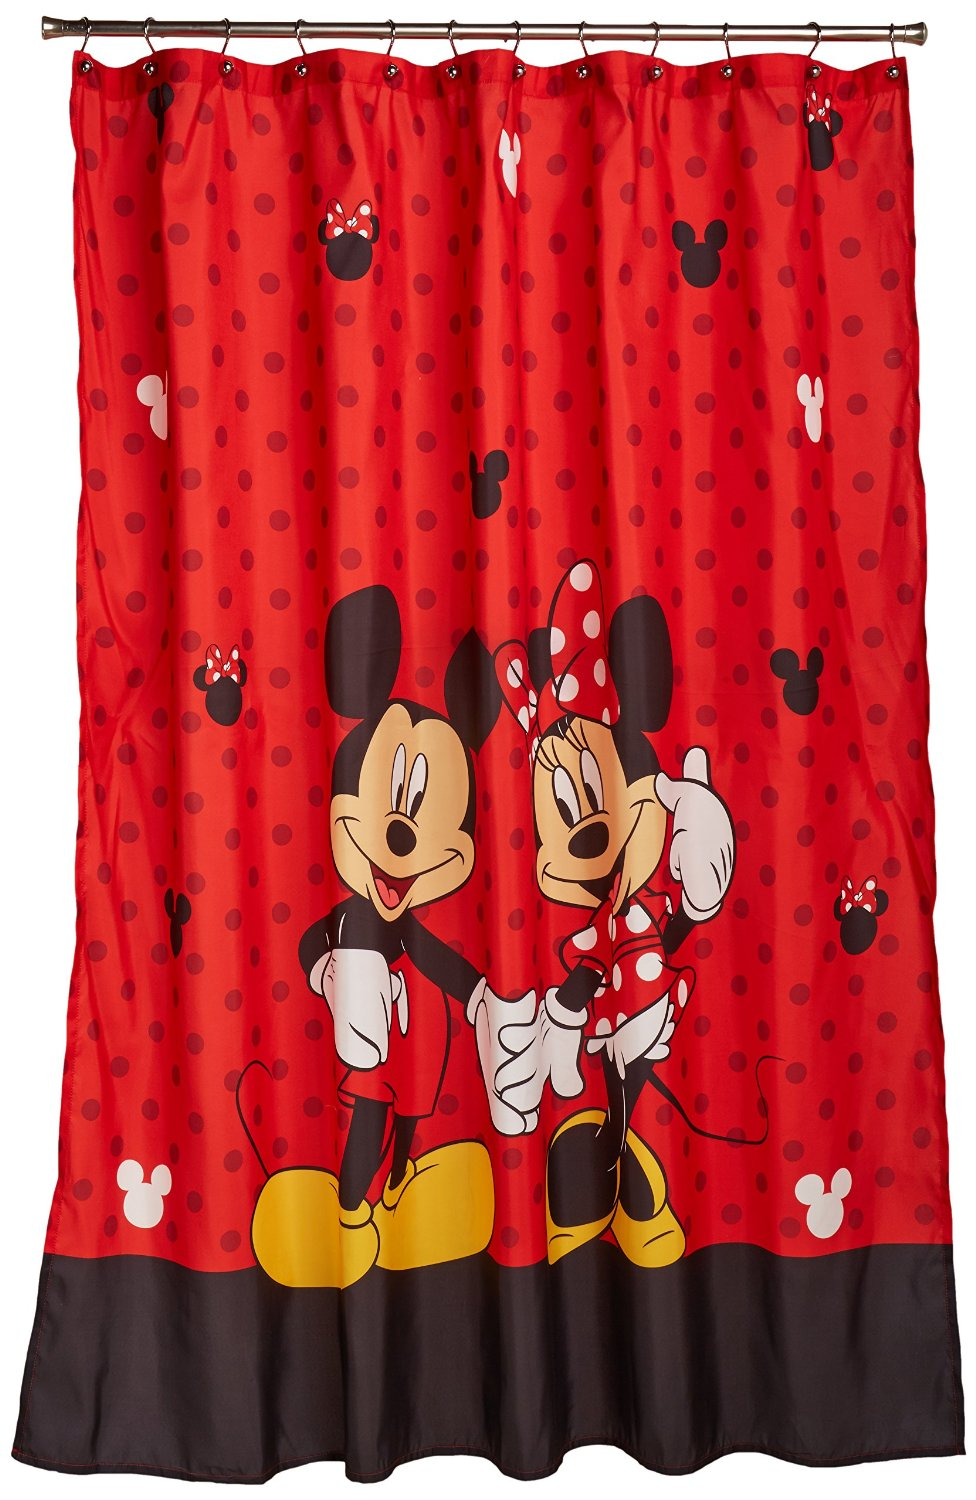 Red And Black Mickey Mouse Head Curtain Valance Home Kitchen Zuiverlucht Handmade Products